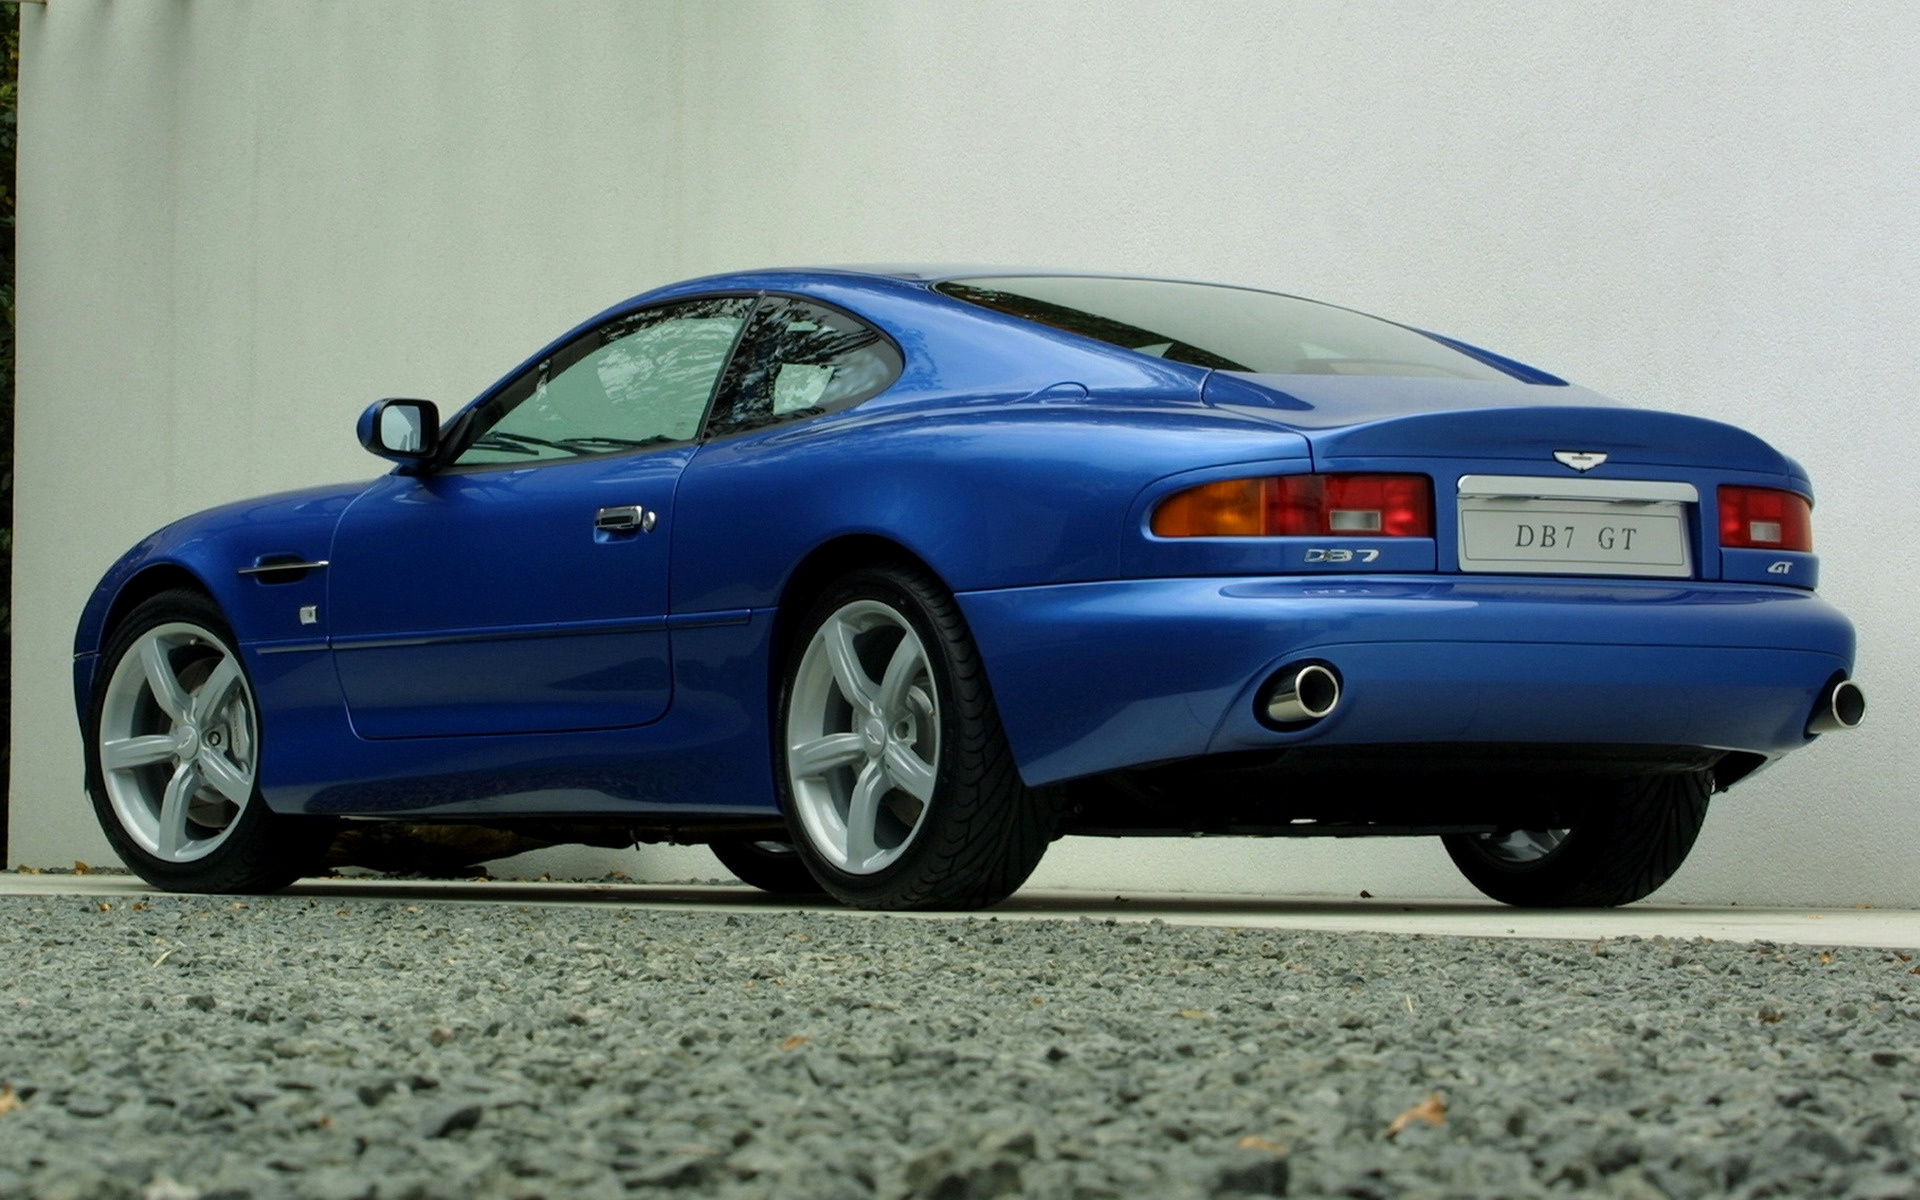 2003 Aston Martin DB7 GT (UK)